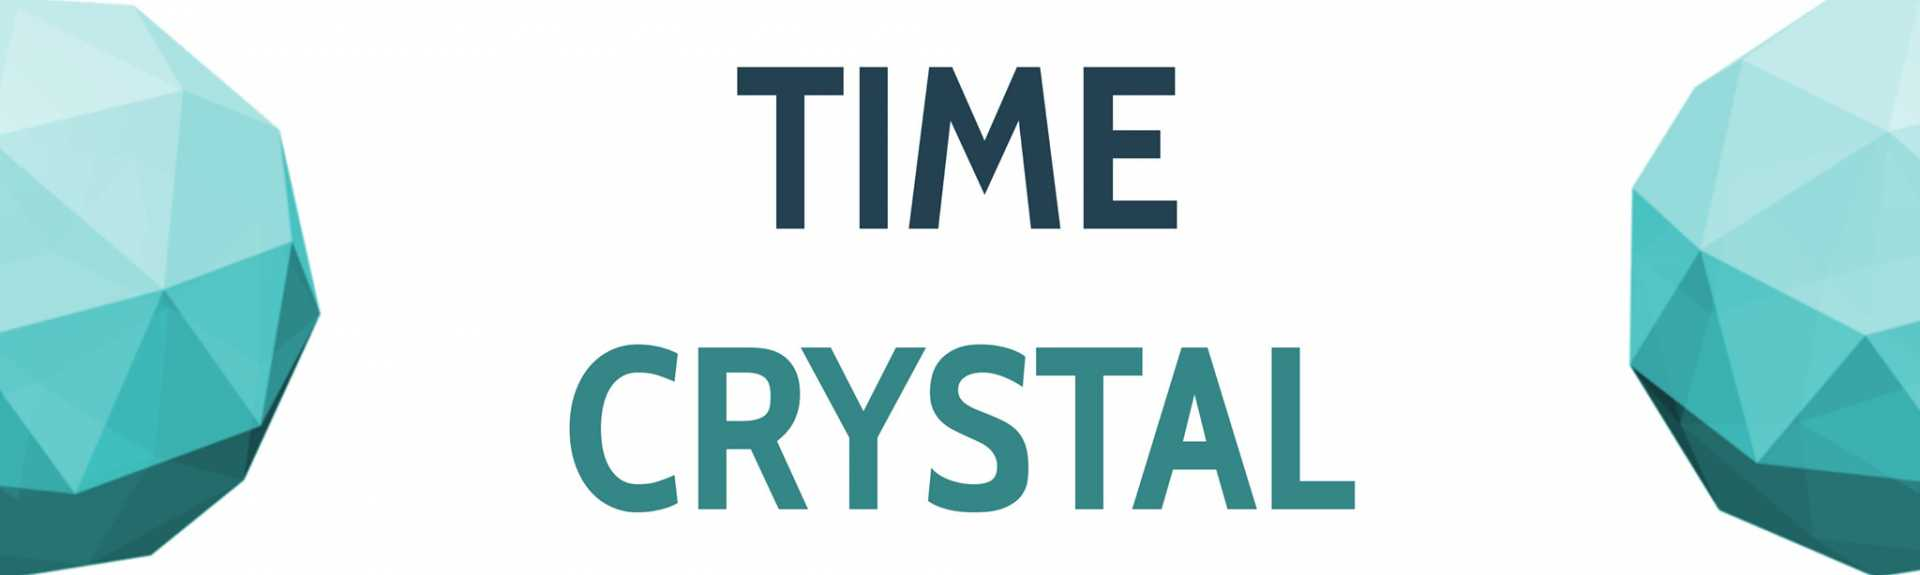 Time Crystal